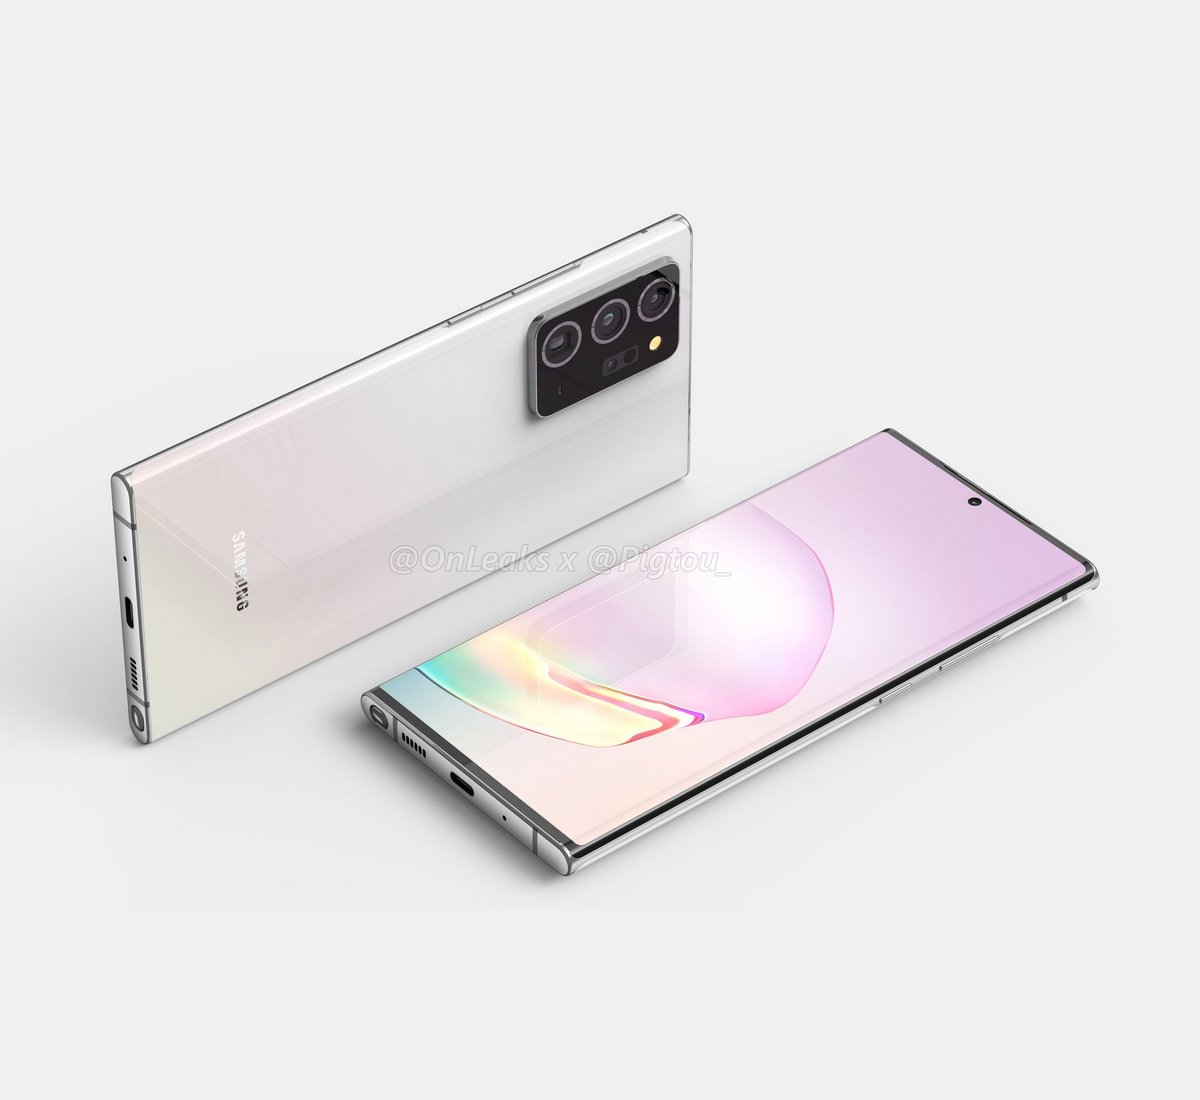 diseño del <stro />Samsung</strong>® Galaxy Note 20+» width=»1200″ height=»1100″ srcset=»https://www.androidsis.com/wp-content/uploads/2020/05/diseño-del-samsung-galaxy-note-20-1.jpg 1200w, <a target=